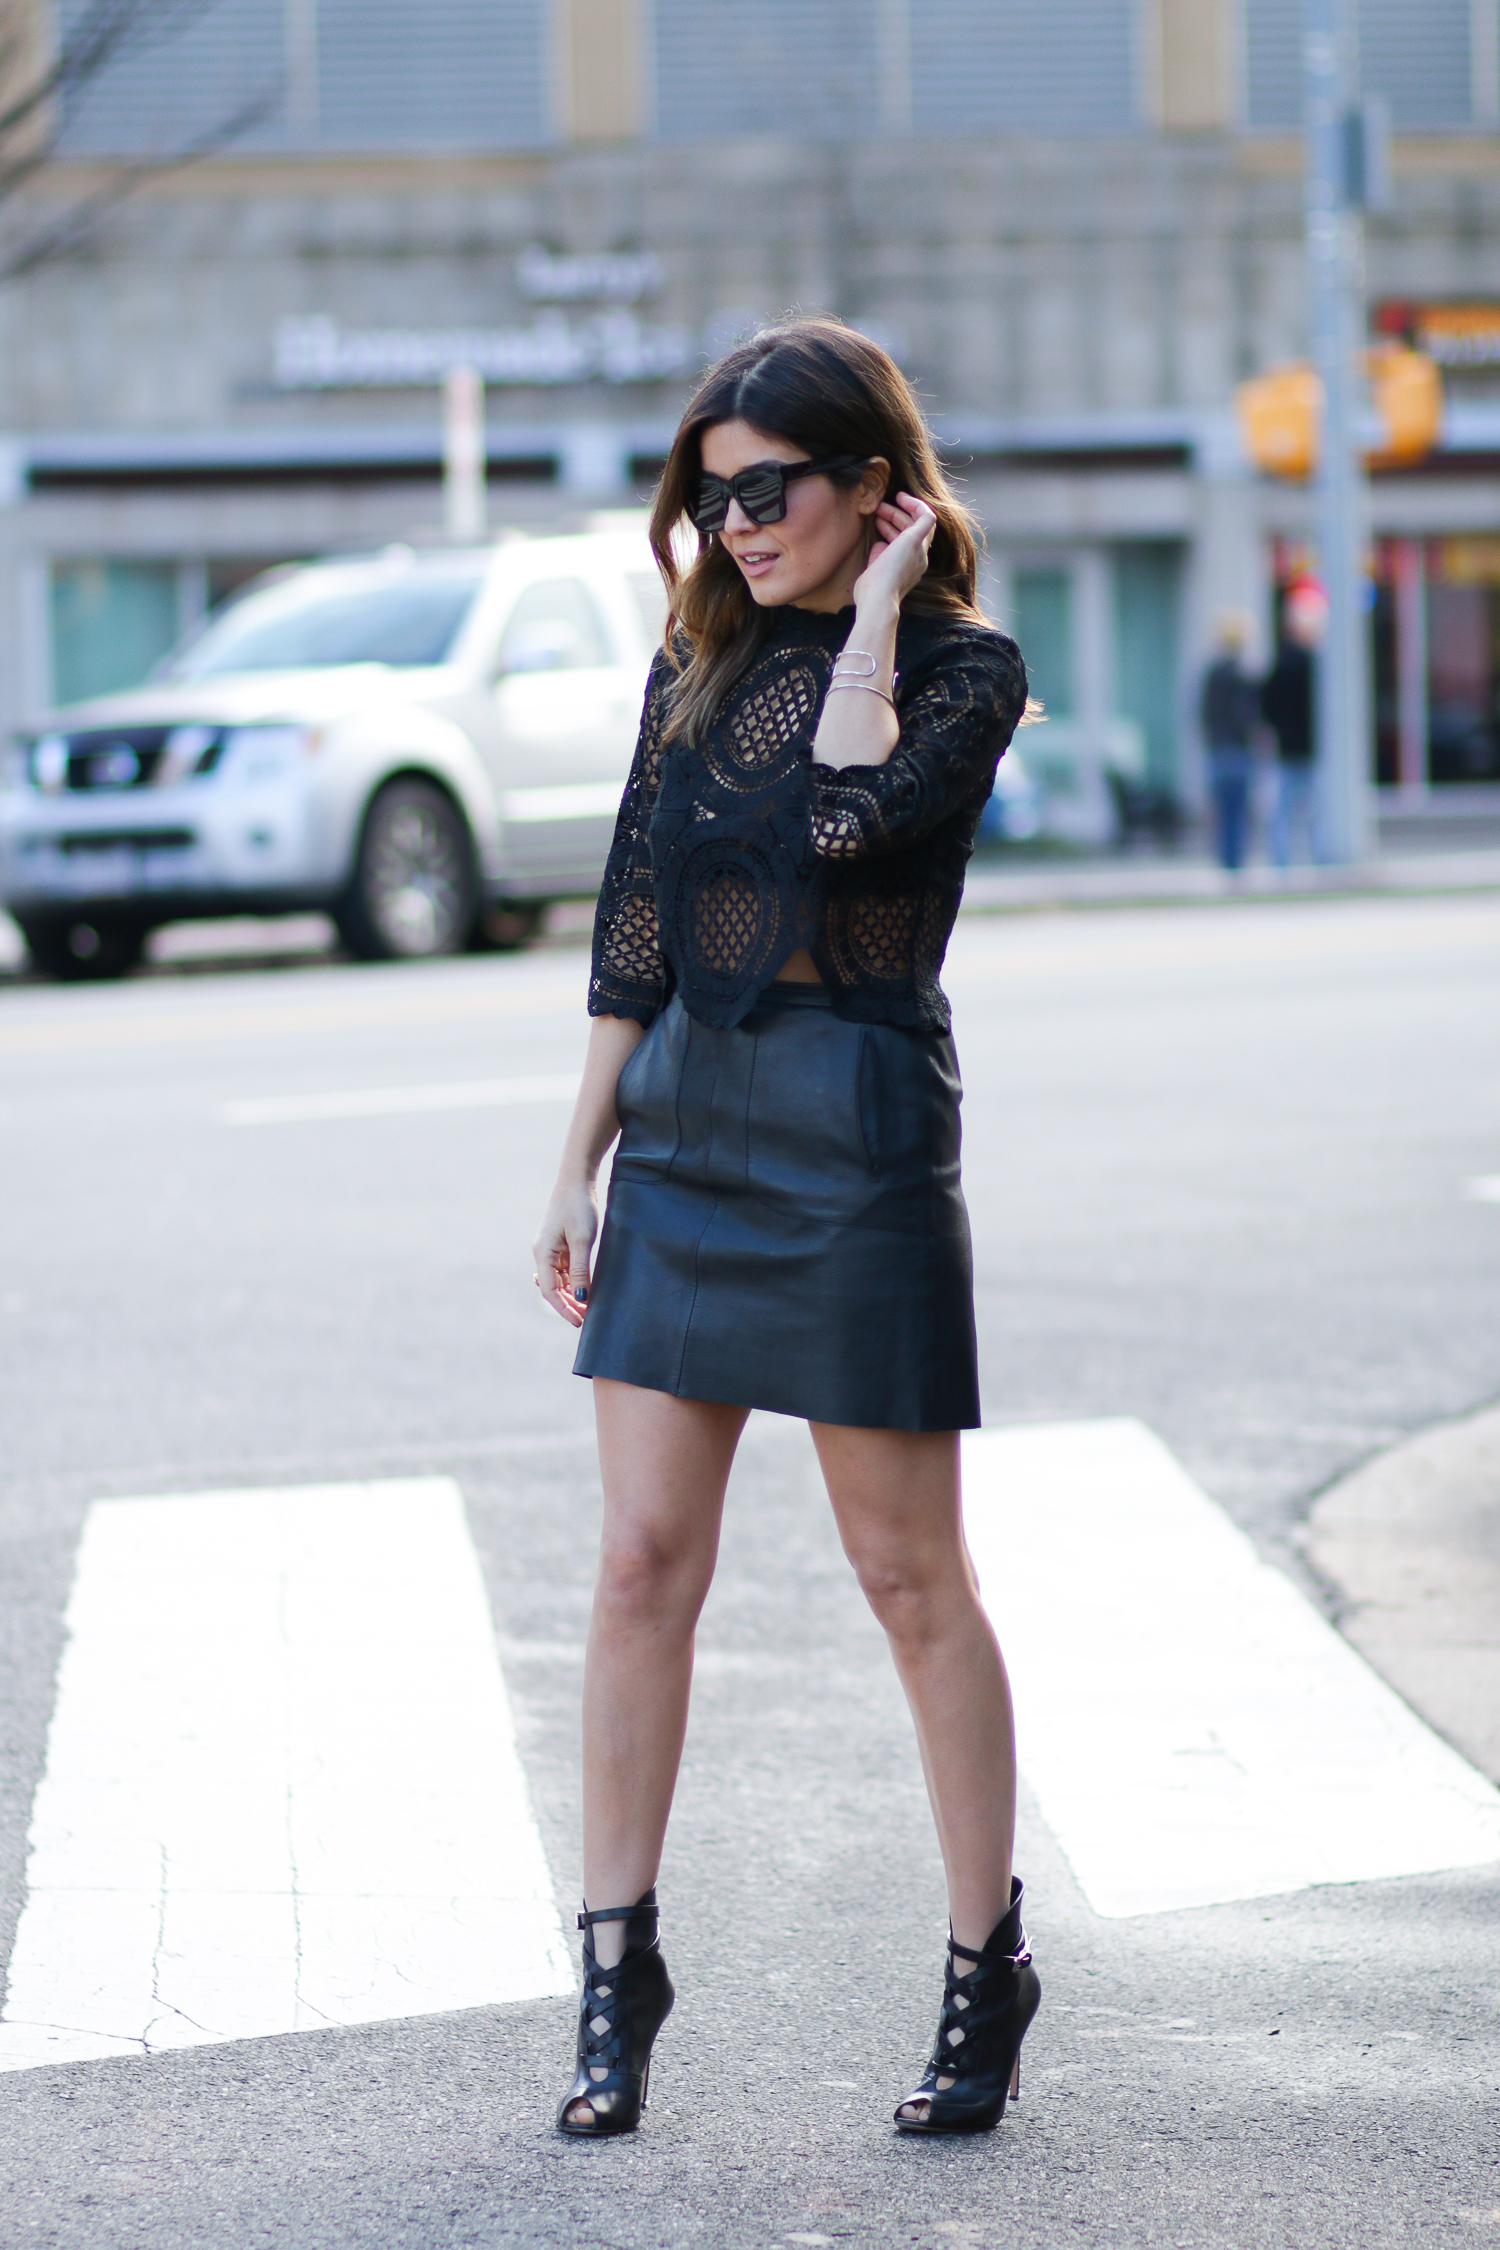 A Black Lace Top | An Edgy Wintertime Look | Style MBA